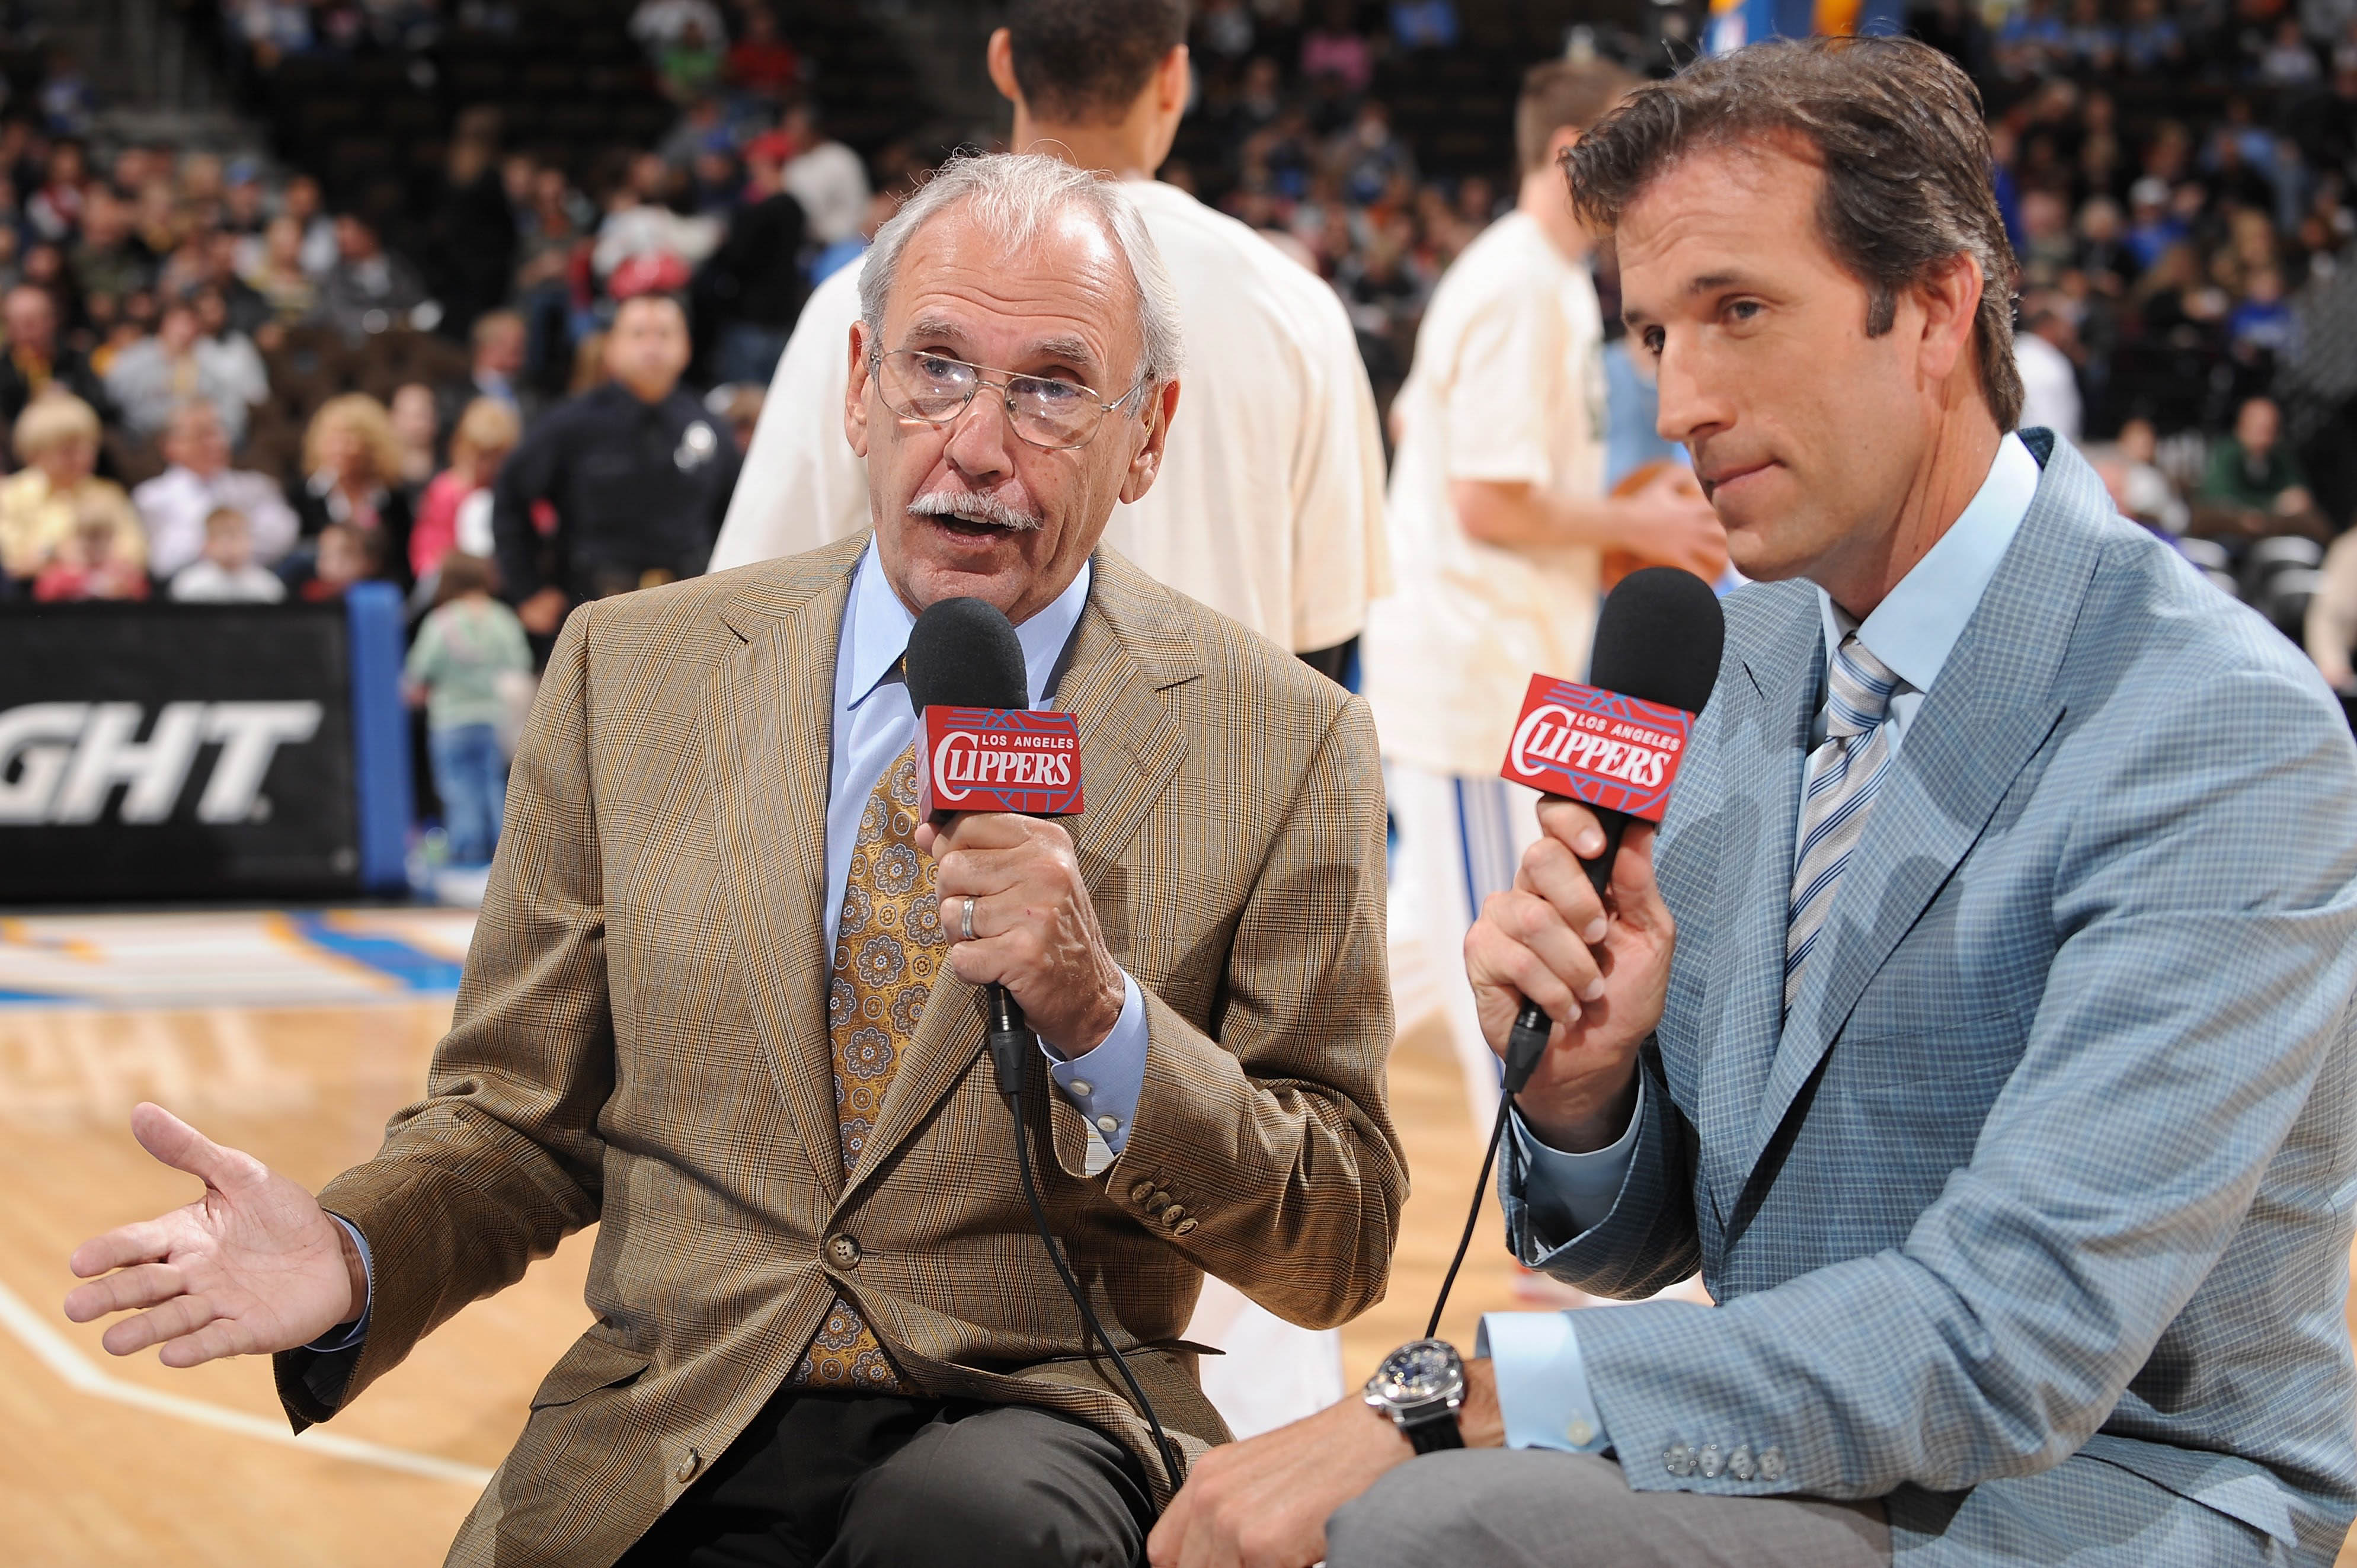 La clippers the impact of blake griffins surgery on the team foxsports com - La Clippers The Impact Of Blake Griffins Surgery On The Team Foxsports Com Ralph Lawler